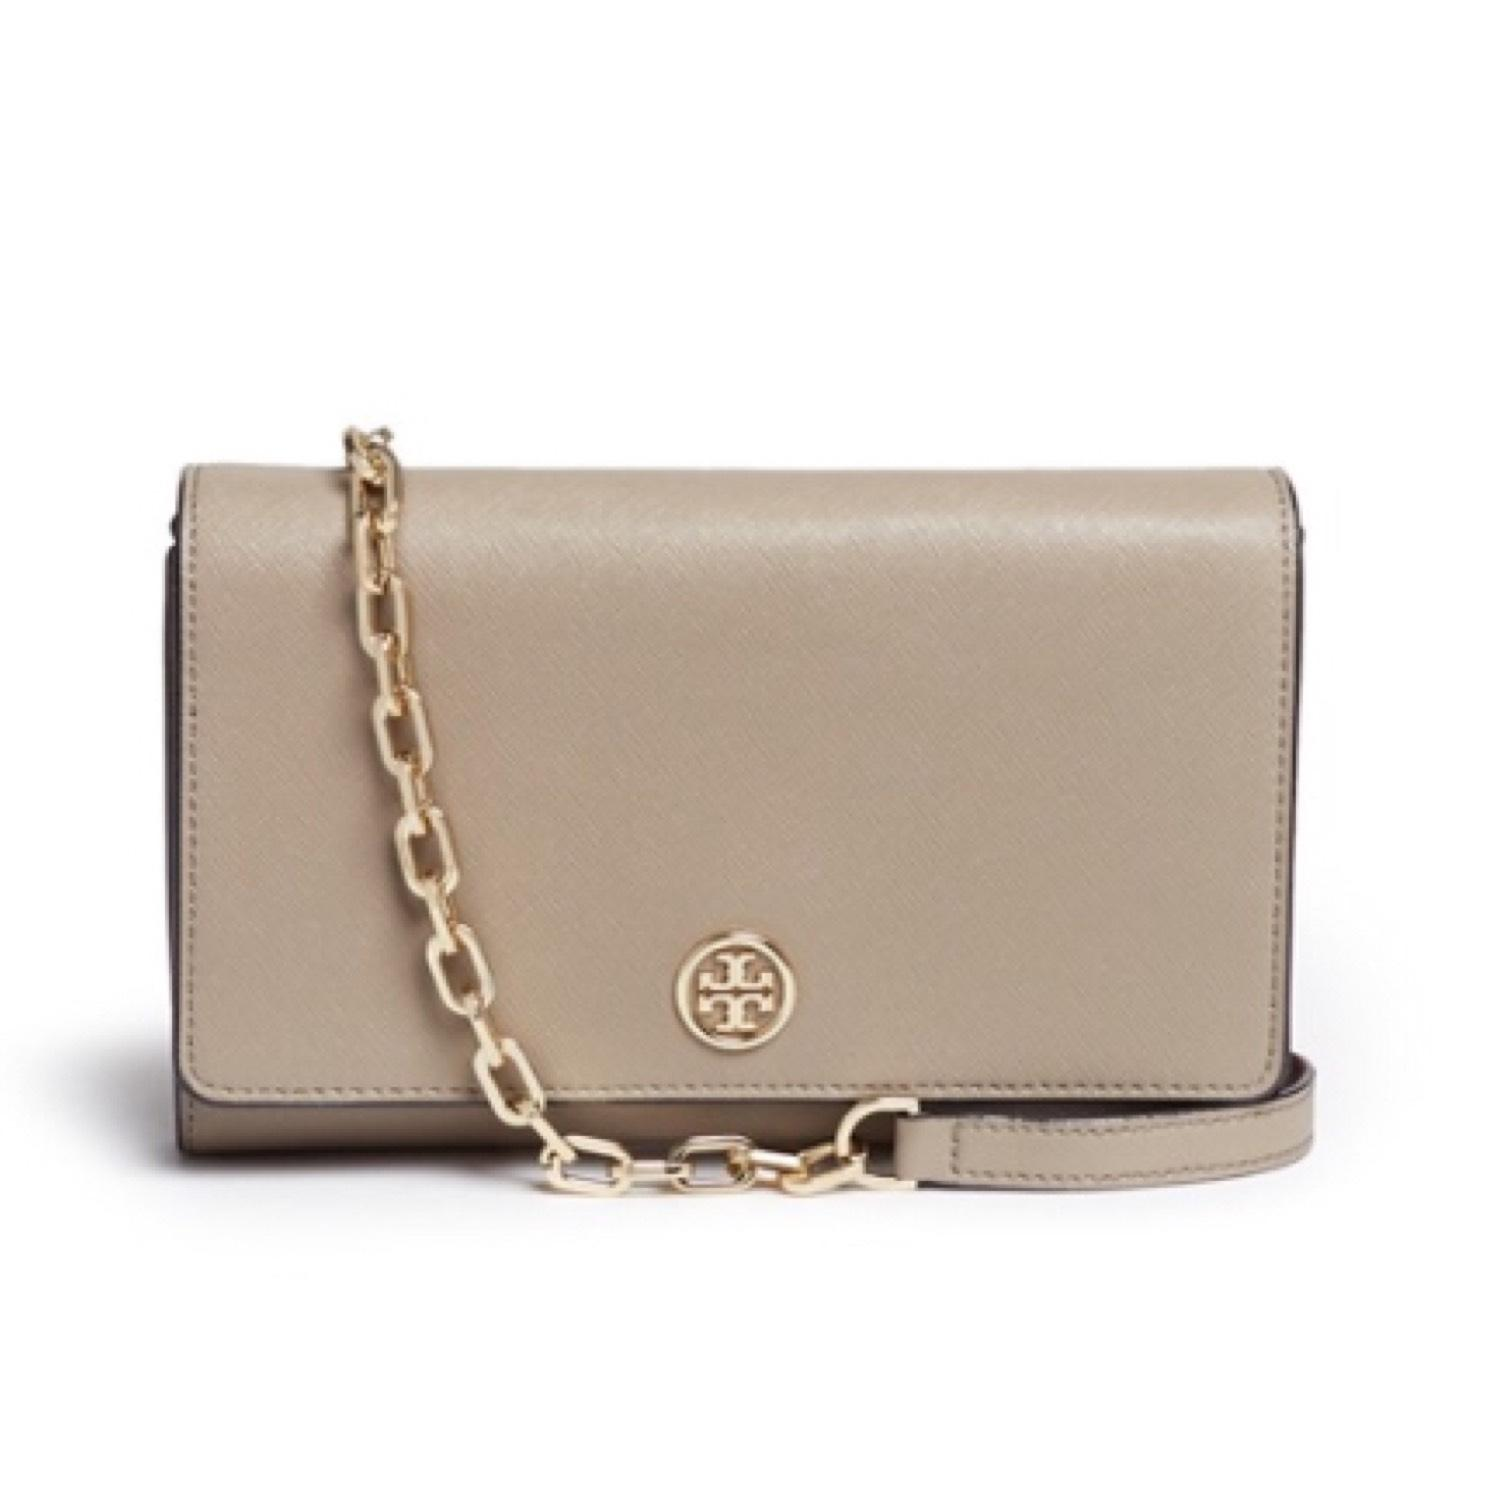 7e5b33b46866a ireland tory burch cross body bag 0b35e 23173  uk tory burch robinson chain  wallet french grey saffiano leather shoulder bag tradesy 17473 dc723